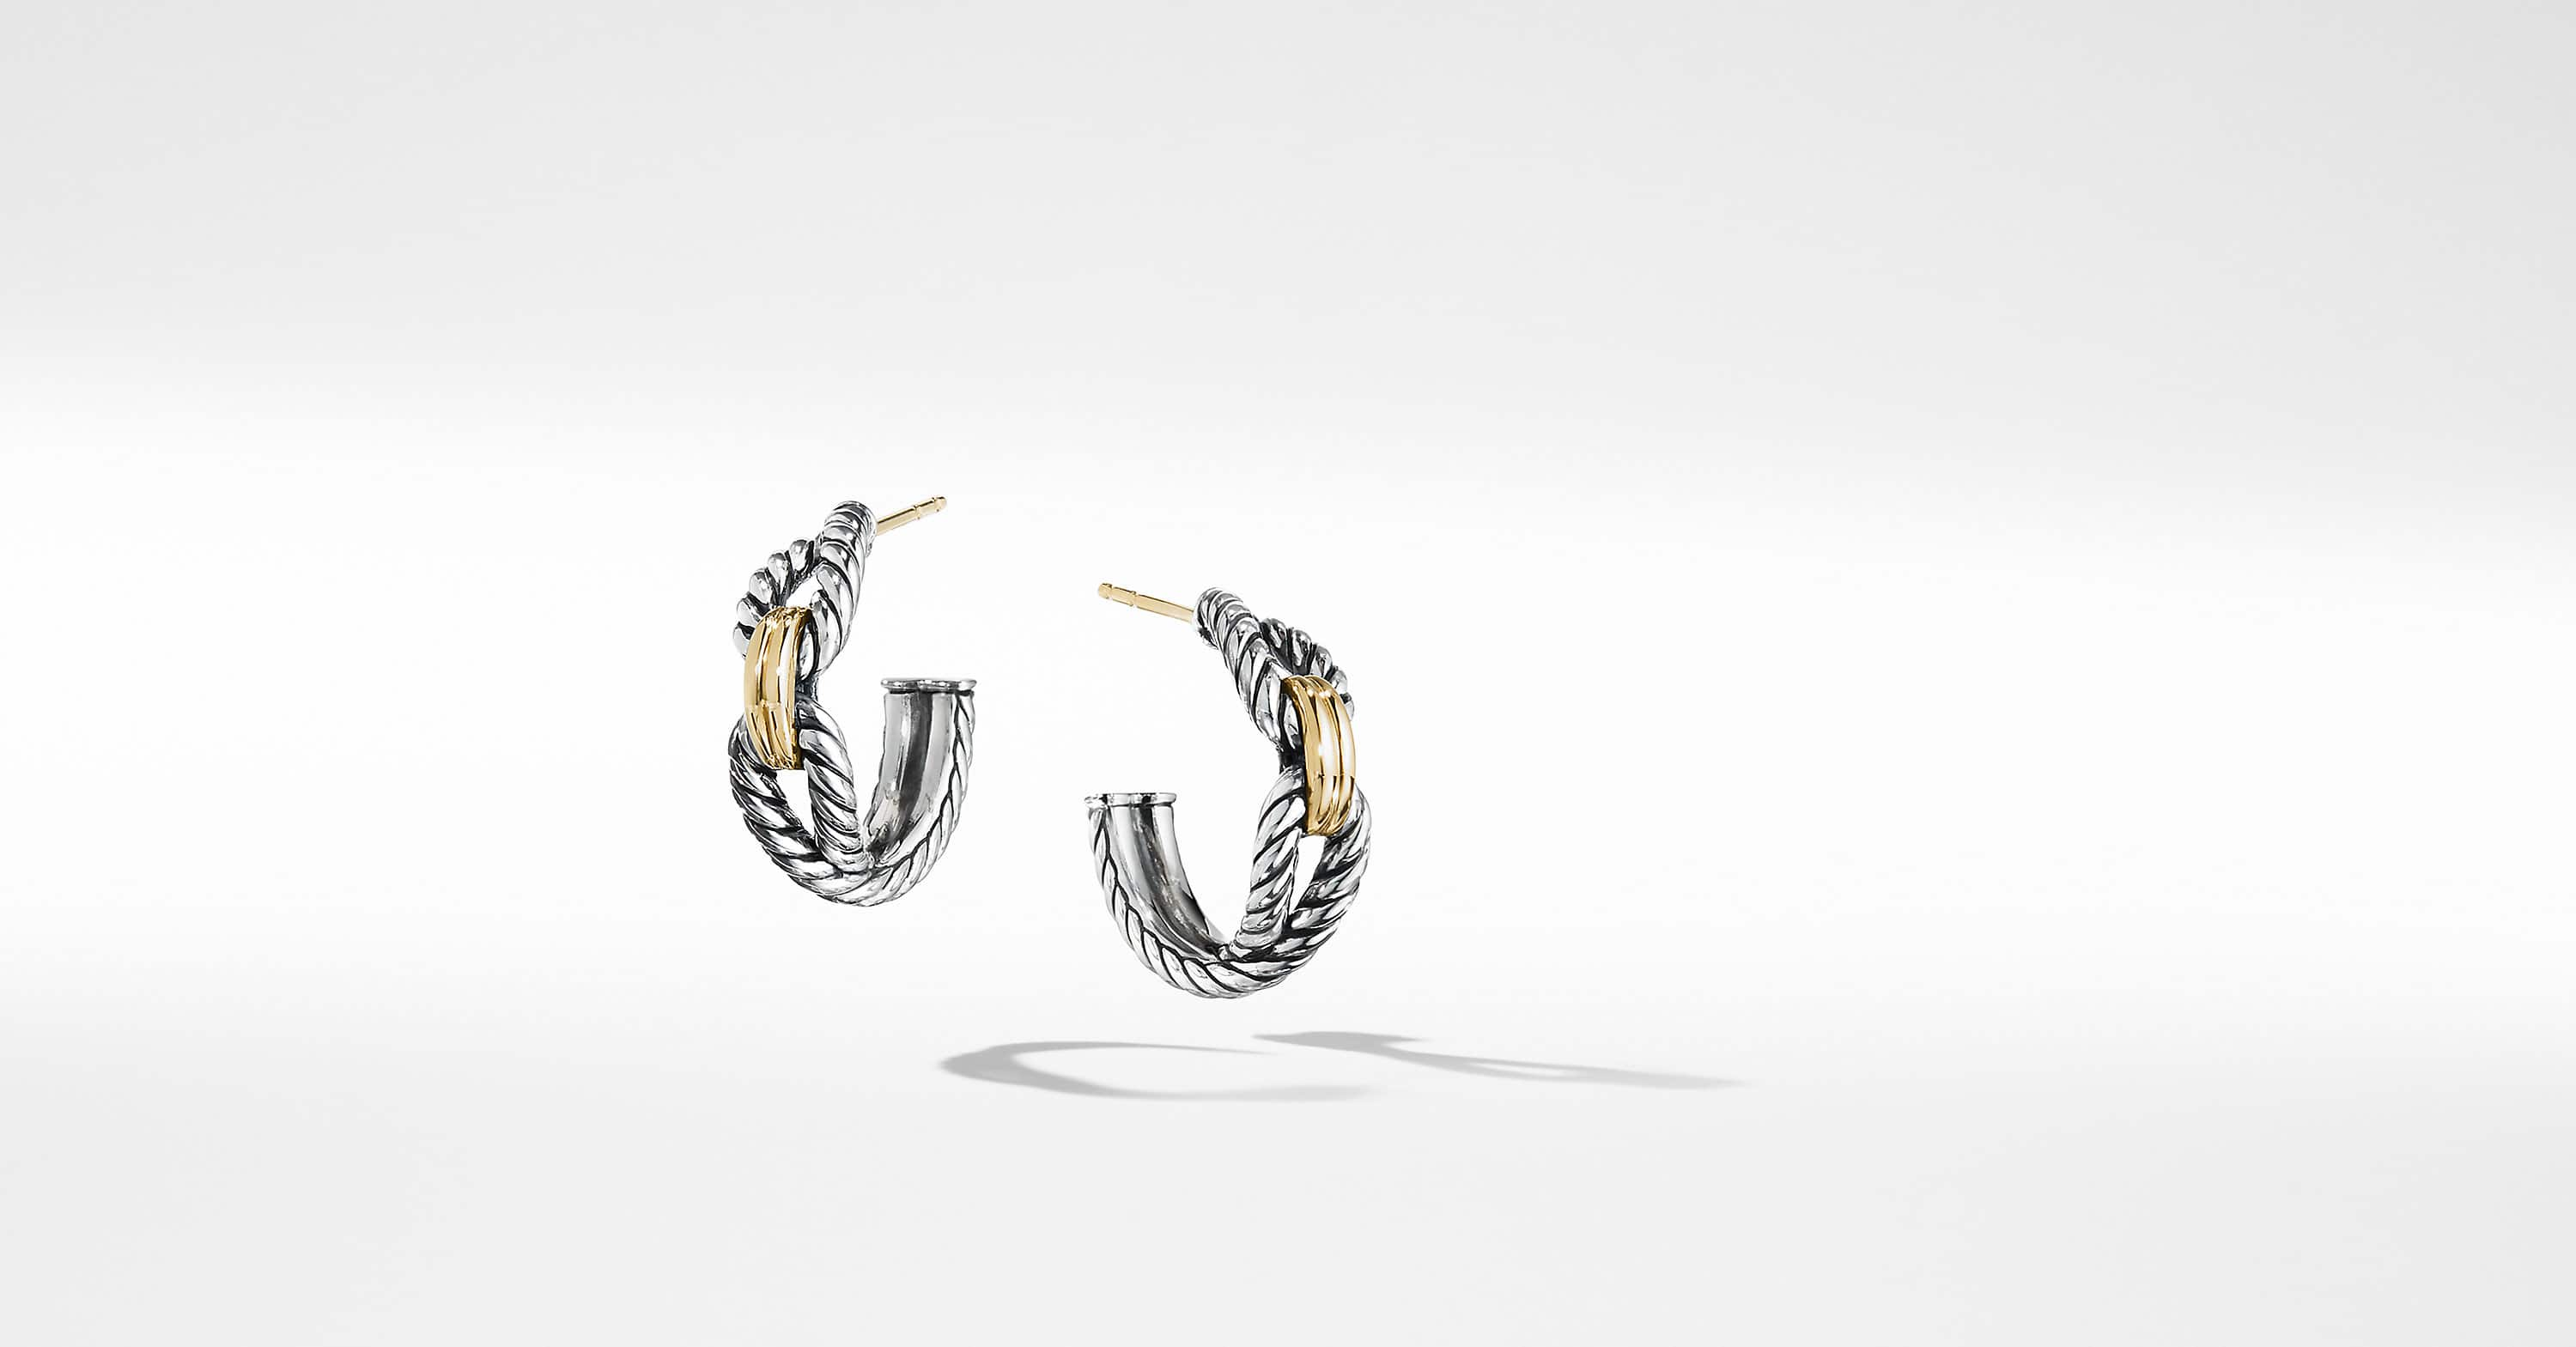 Cable Loop Hoop Earrings with 18K Gold, 22mm